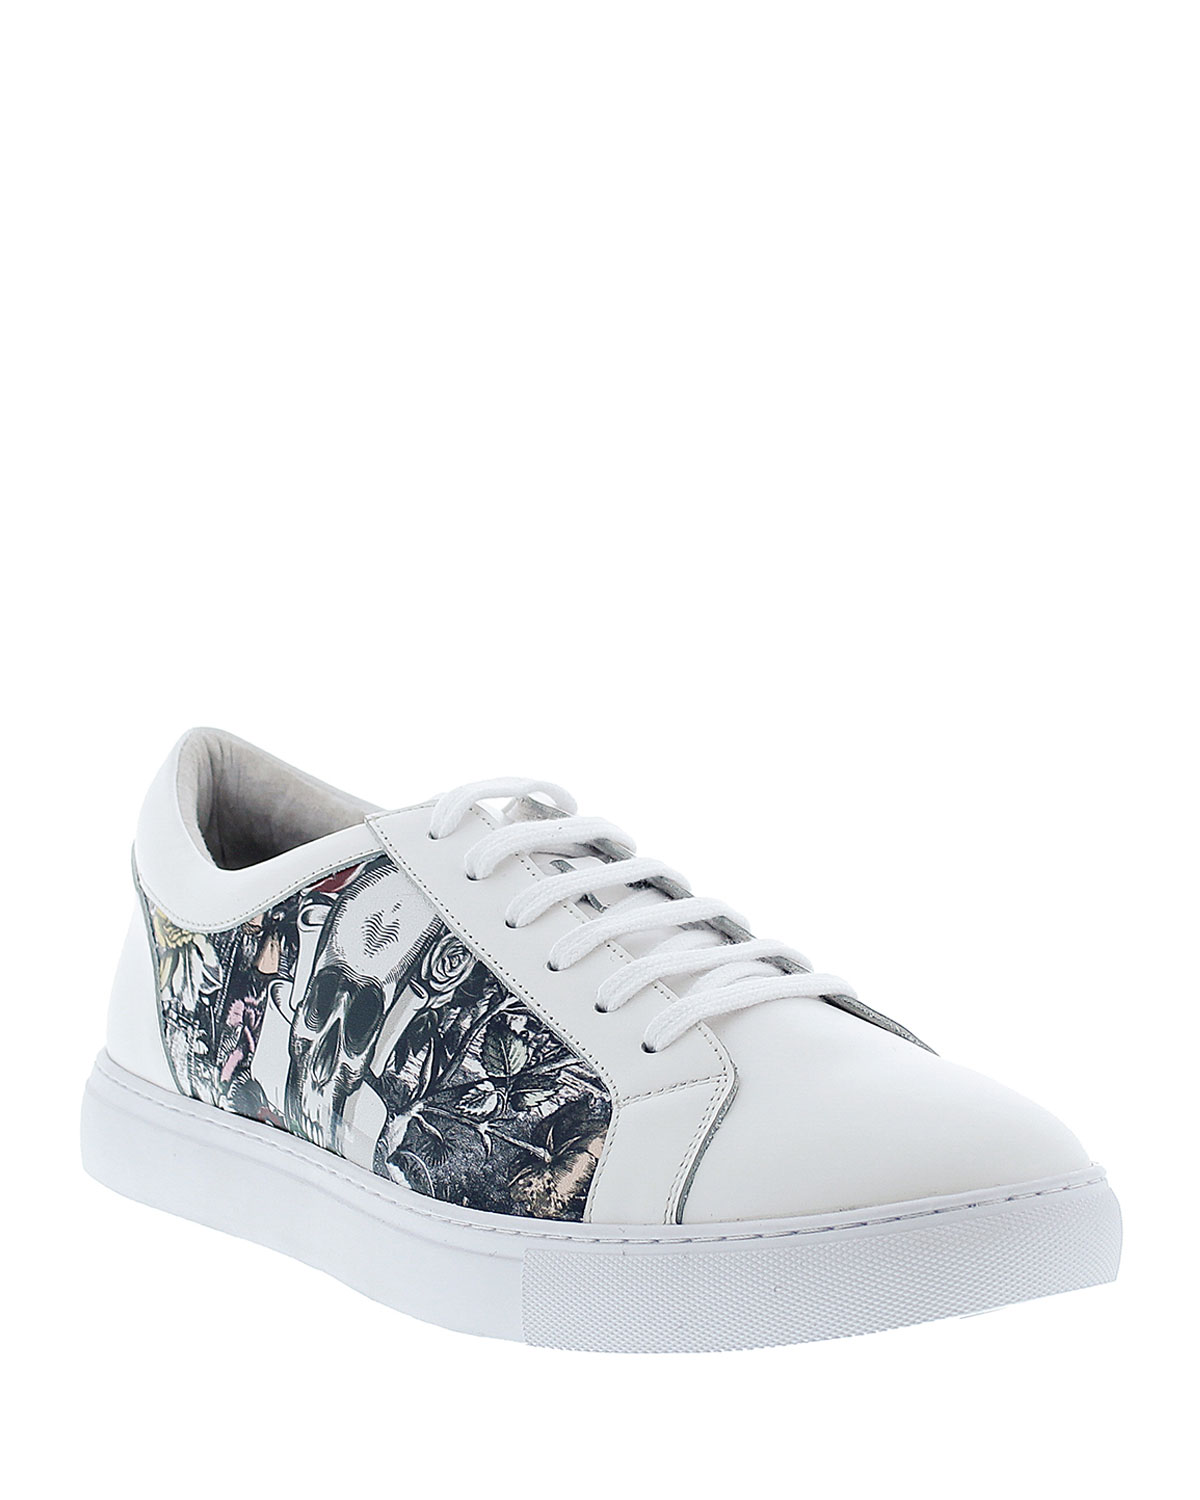 Robert Graham Leathers MEN'S GRAM FLORAL & SKULL LEATHER LACE-UP SNEAKERS